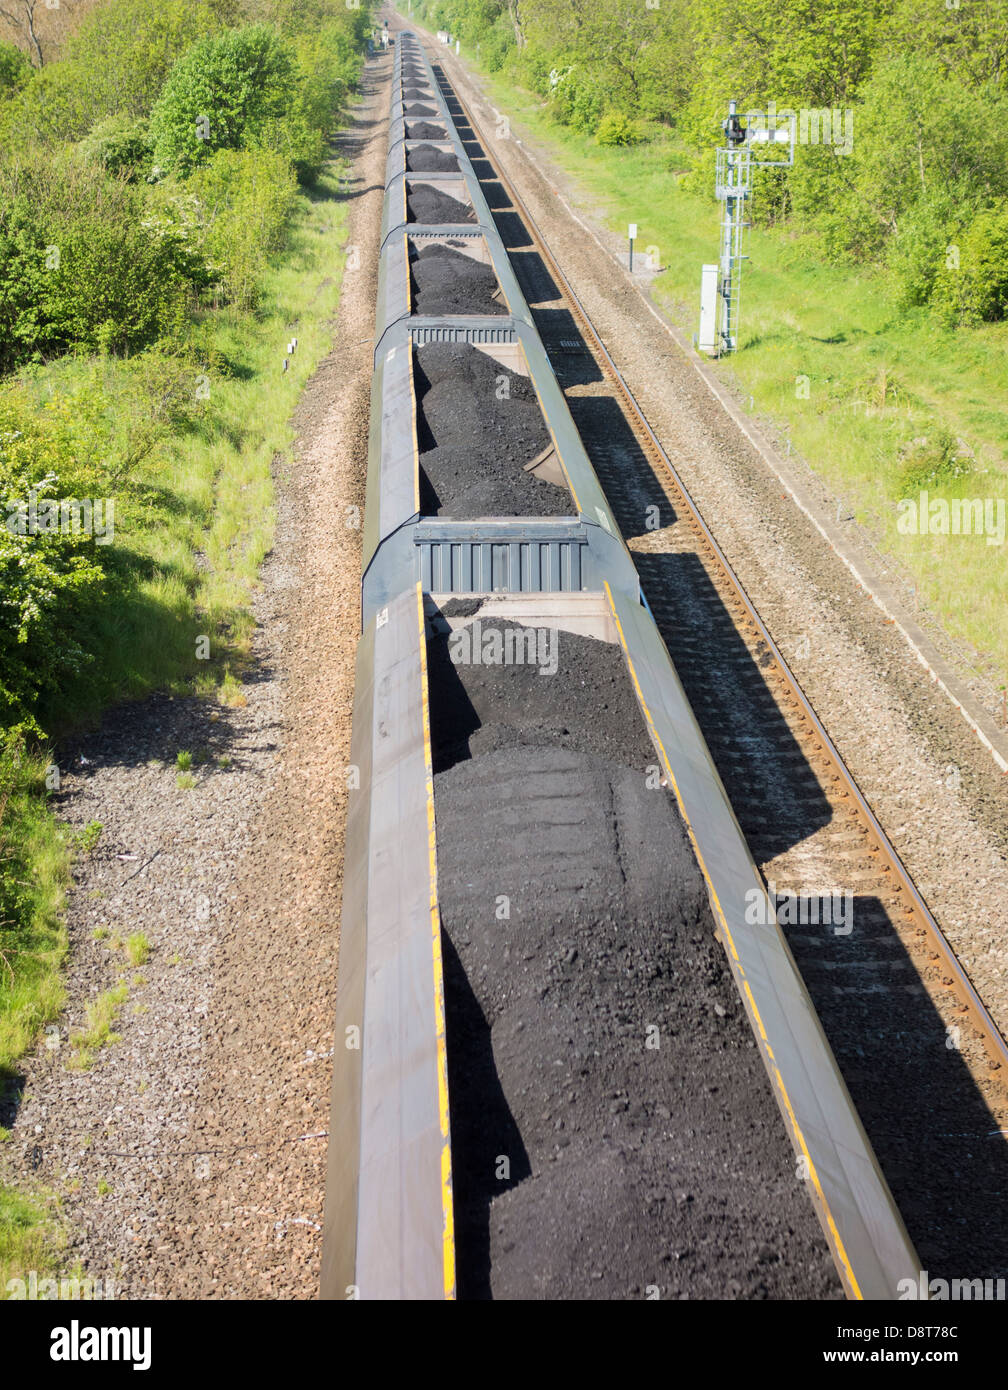 Freight train on the east coast line carrying coal from The Port of Tyne to Drax power station in North Yorkshire, - Stock Image